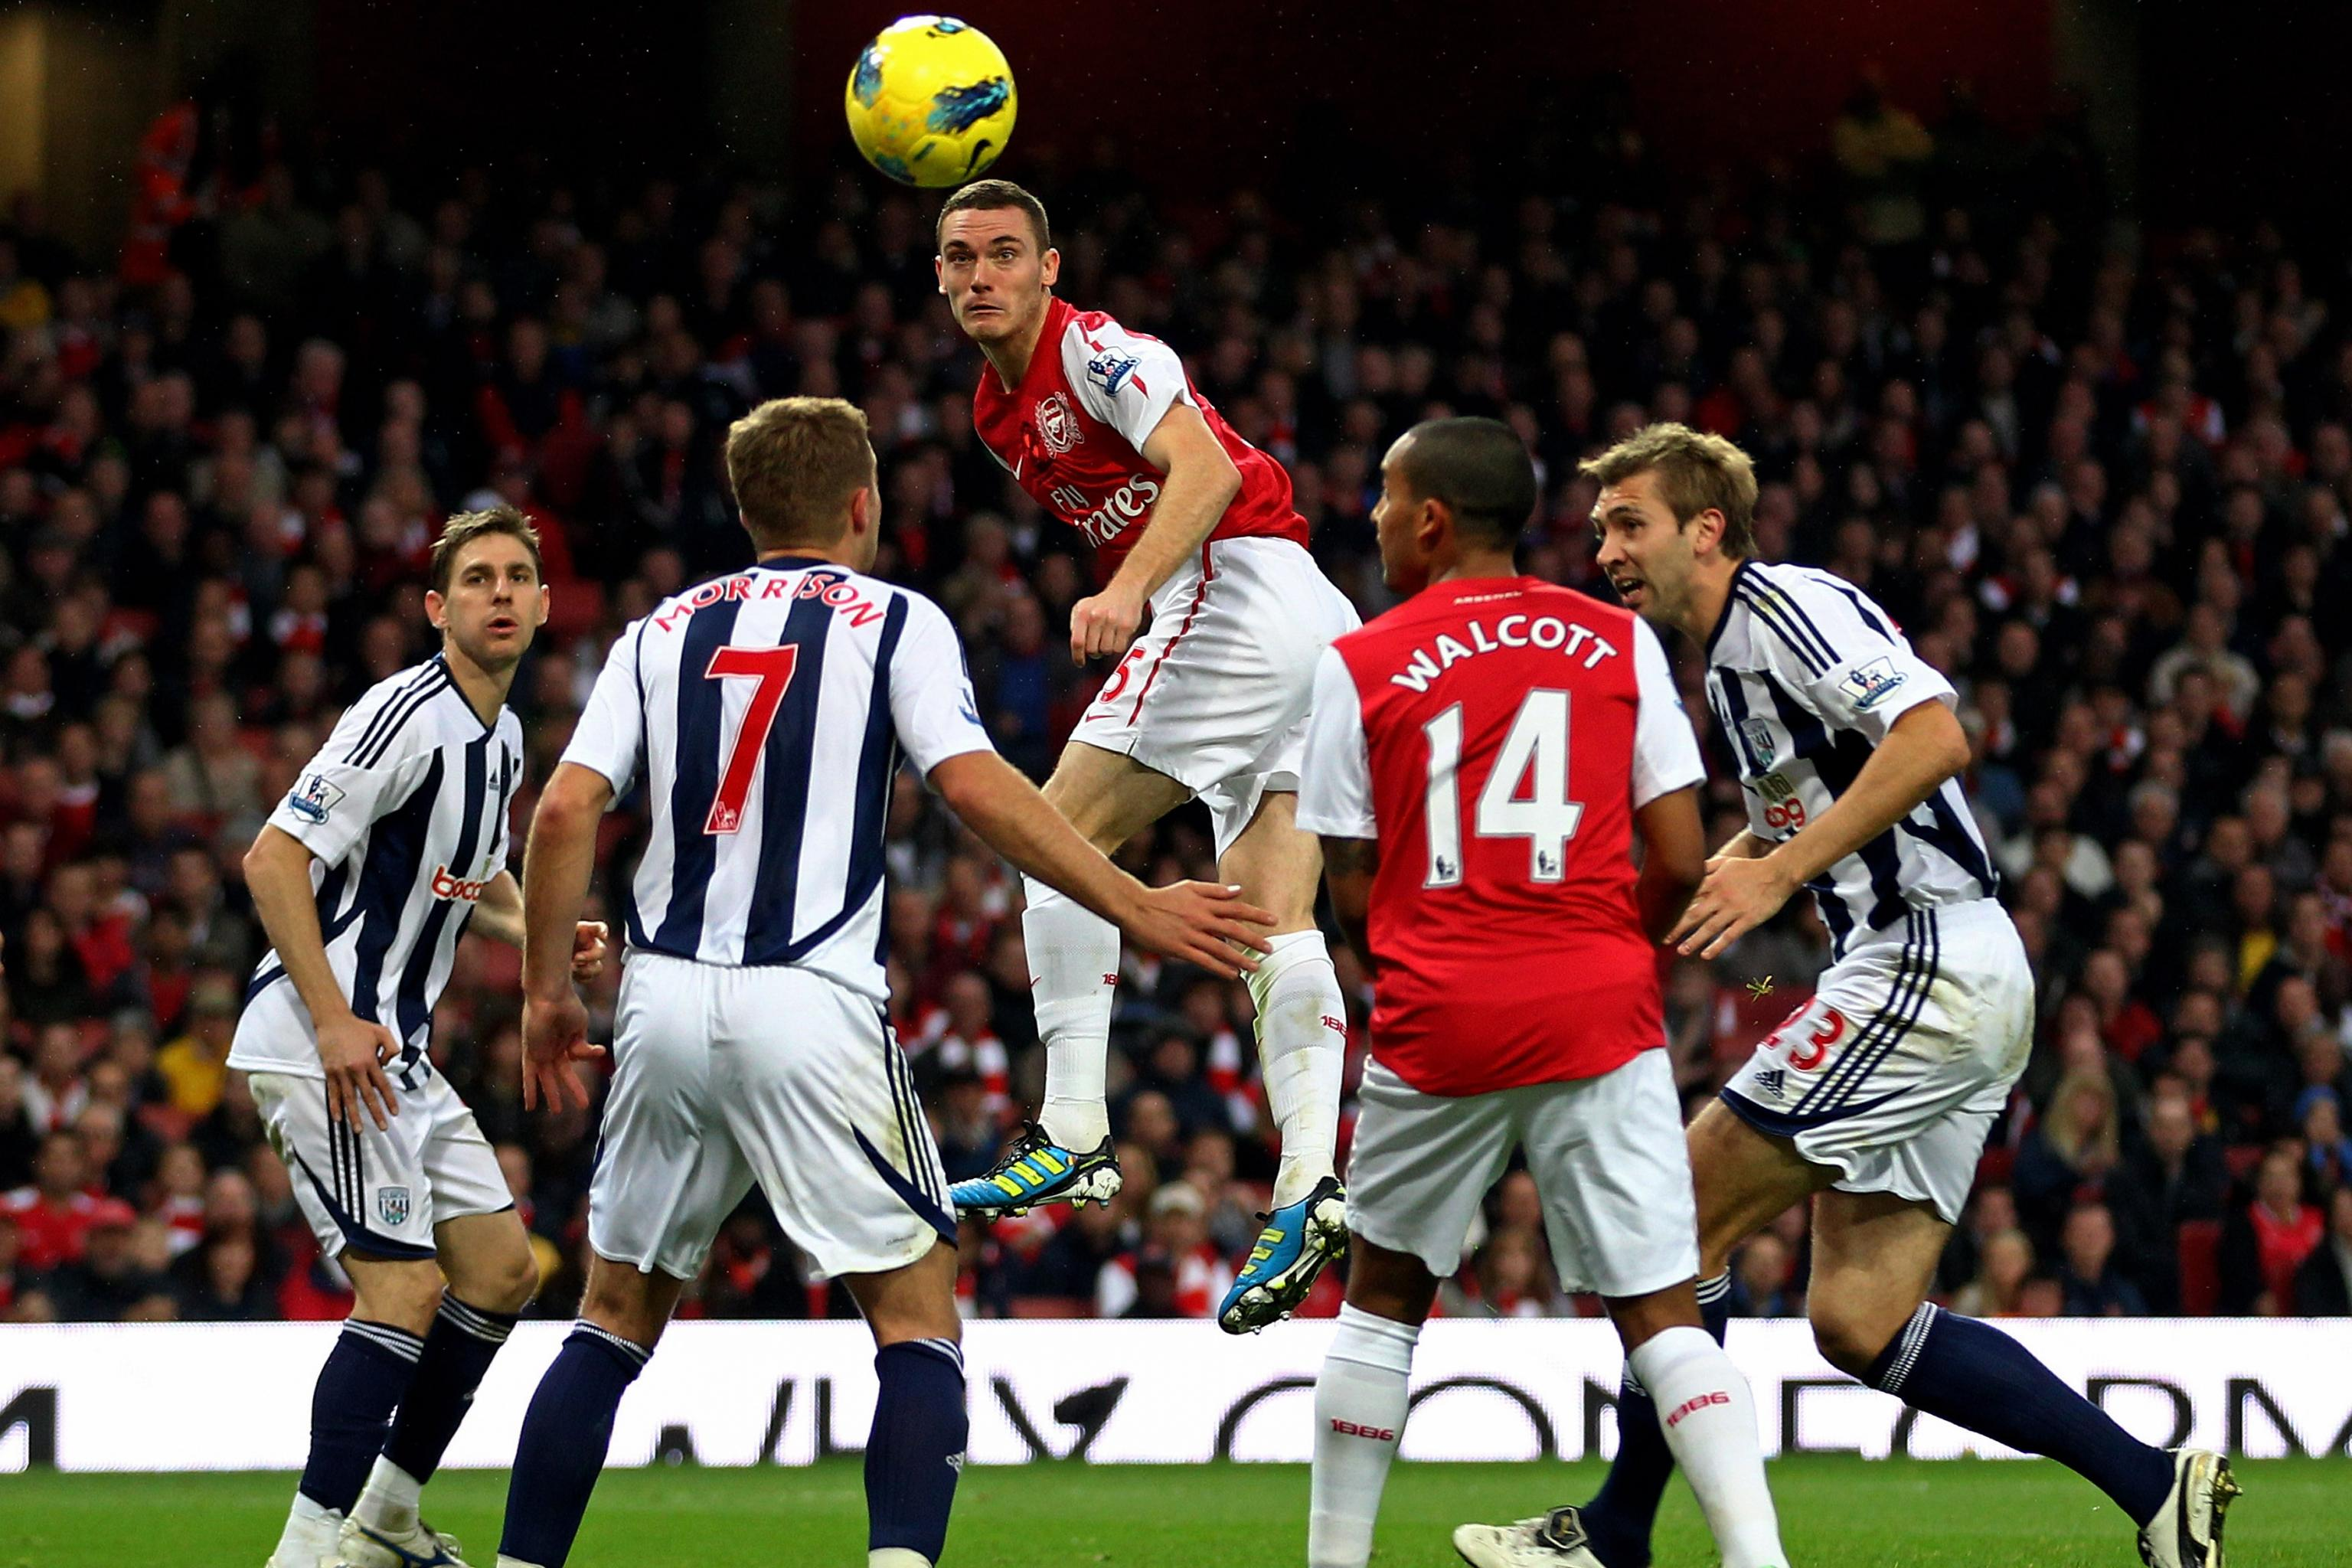 West Bromwich Albion Vs Arsenal Preview Live Stream Start Time And More Bleacher Report Latest News Videos And Highlights